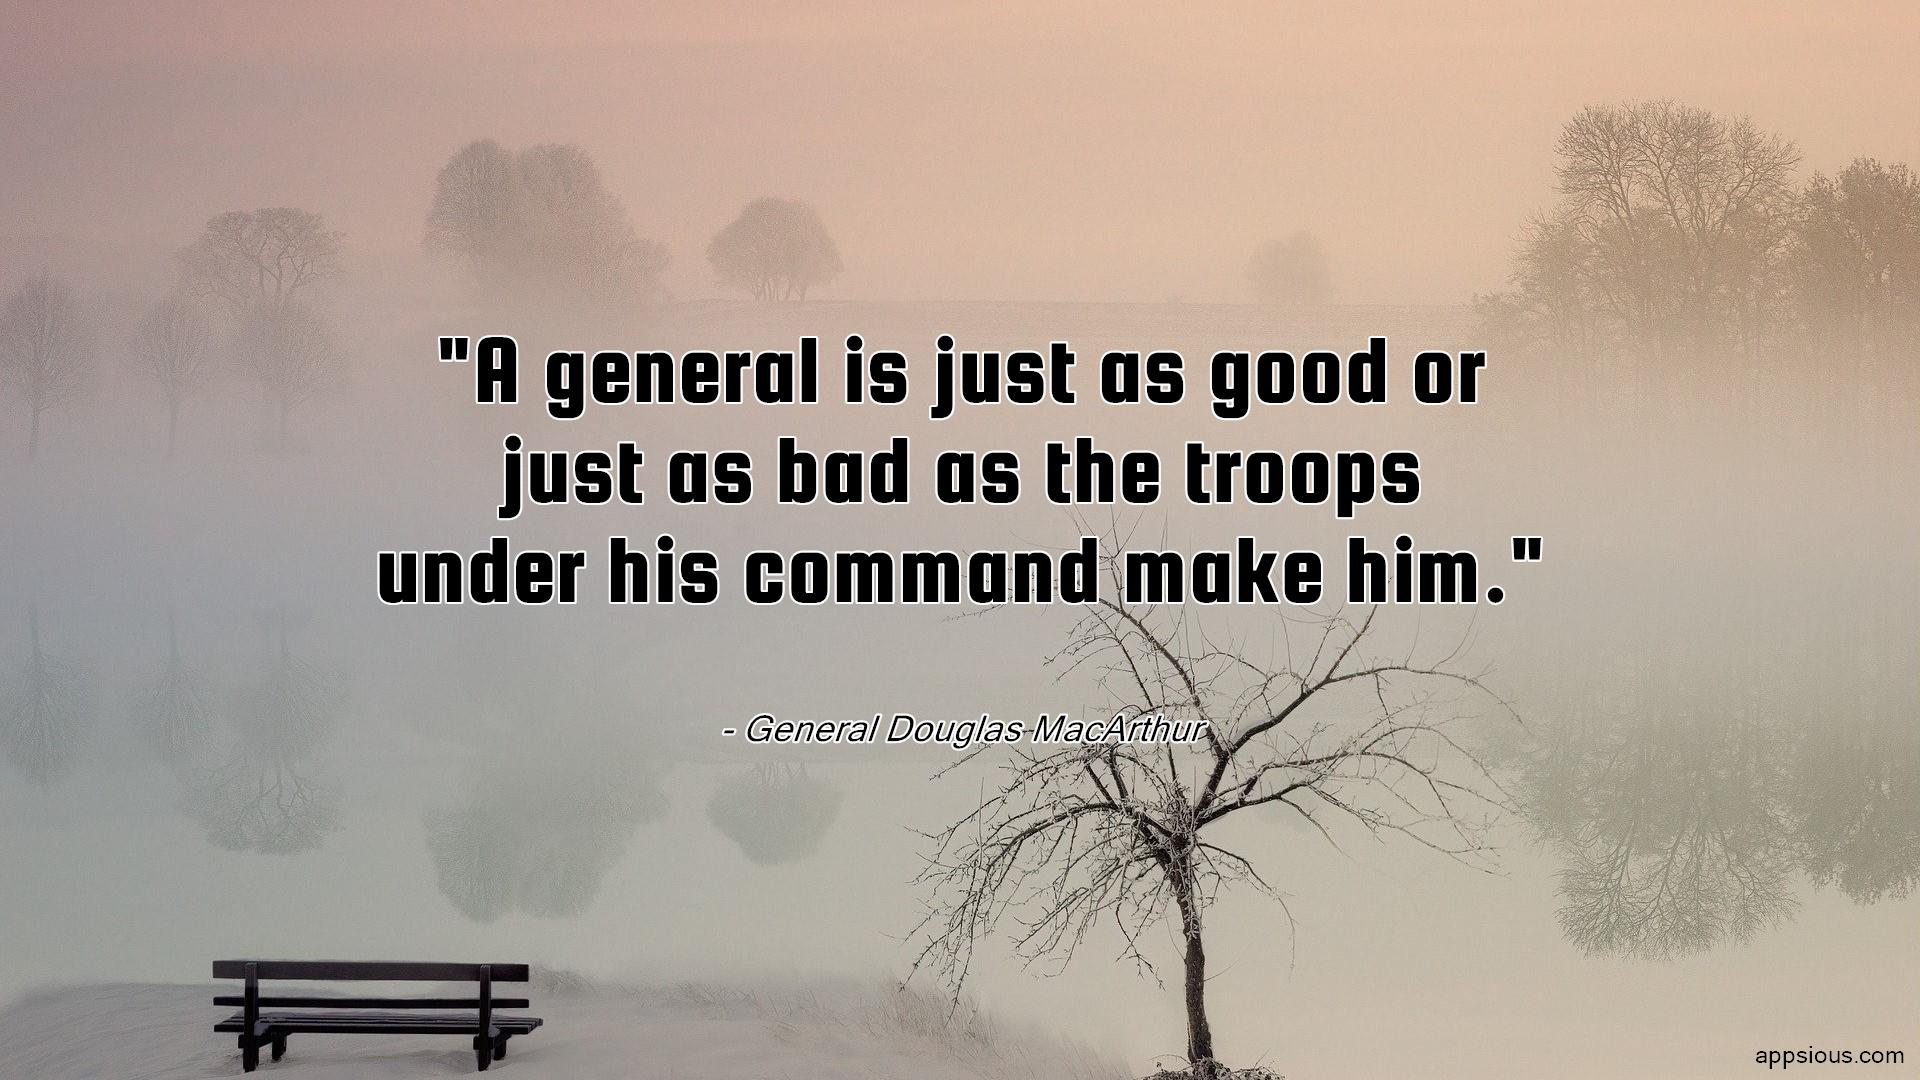 A general is just as good or just as bad as the troops under his command make him.